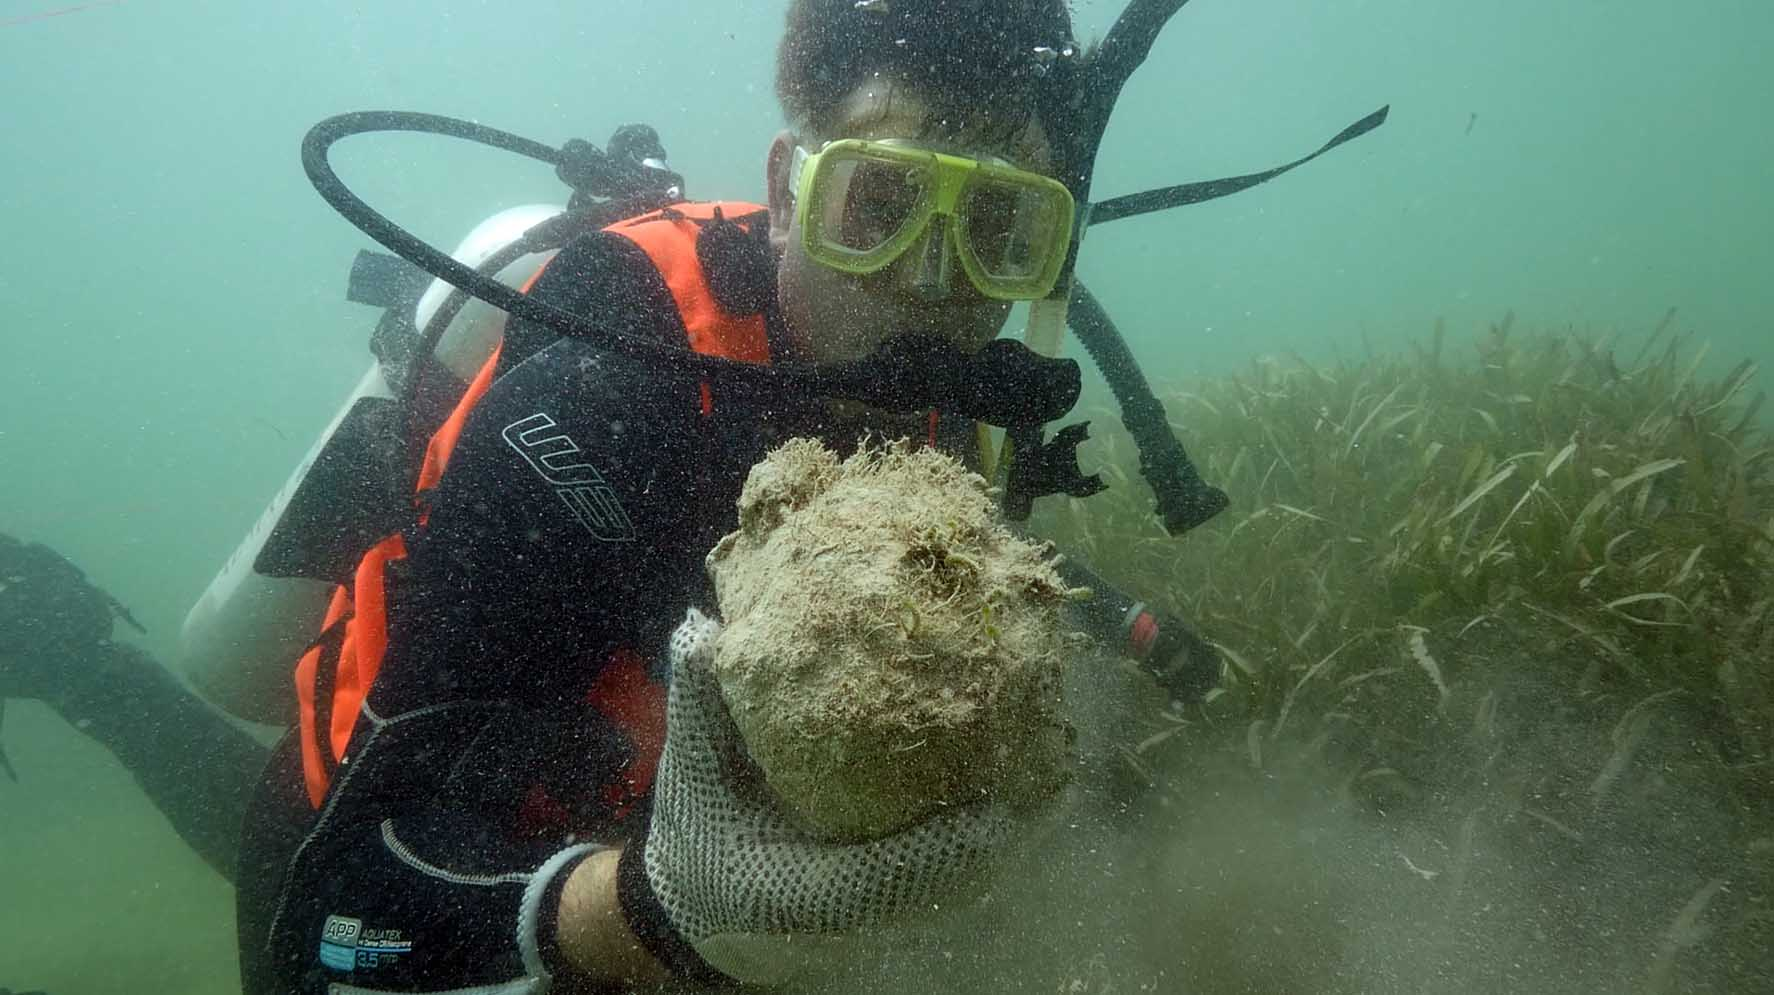 Simon with a cannonball covered with a natural concretion